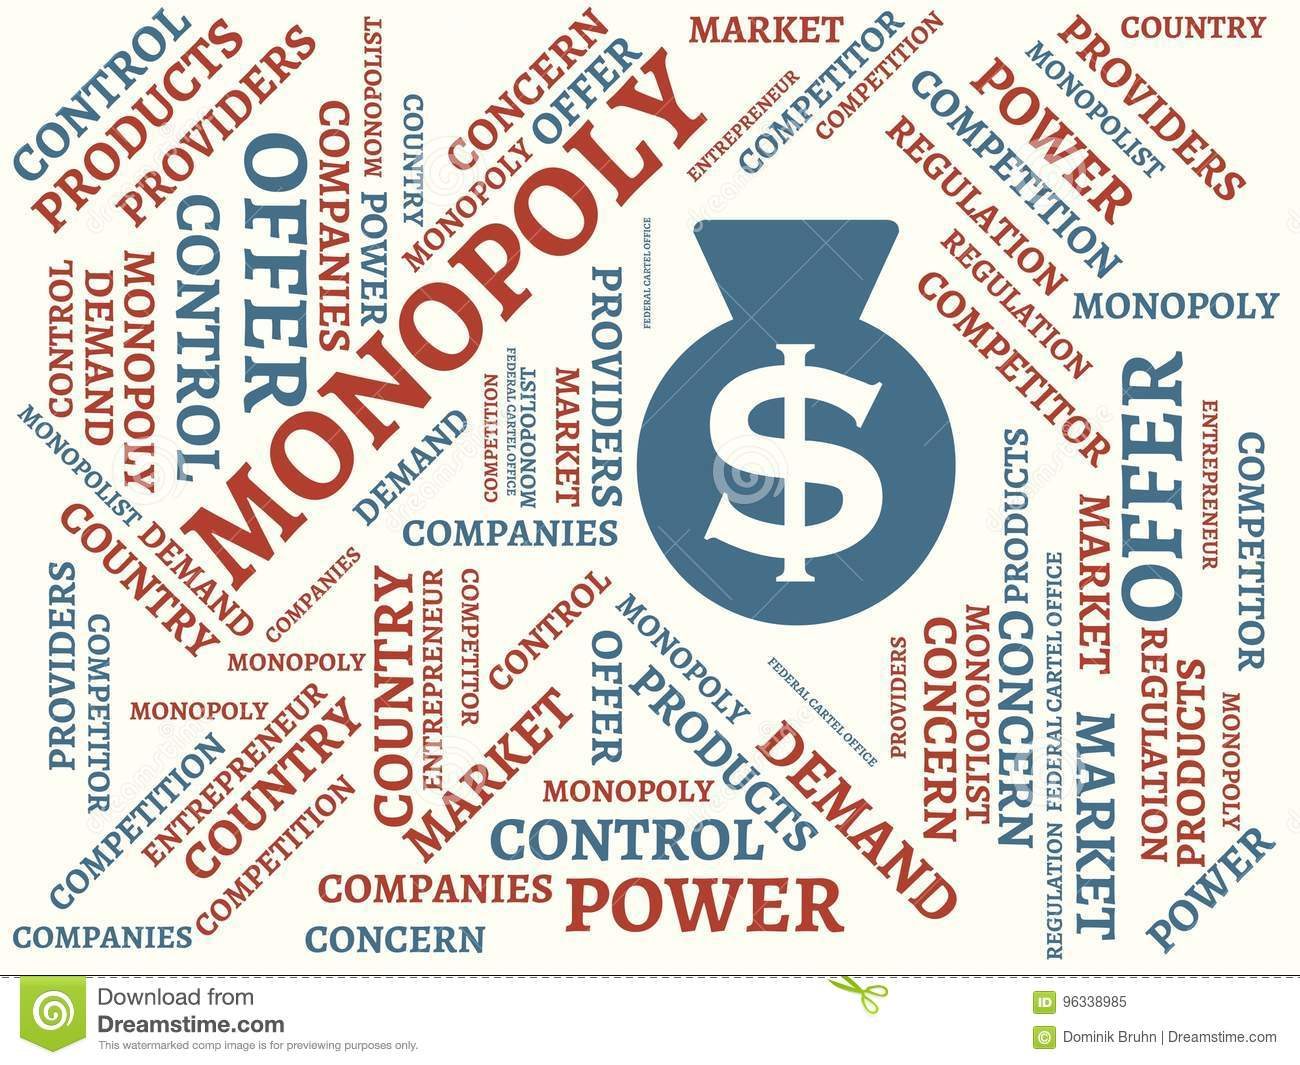 Monopoly Competition Image With Words Associated With The Topic